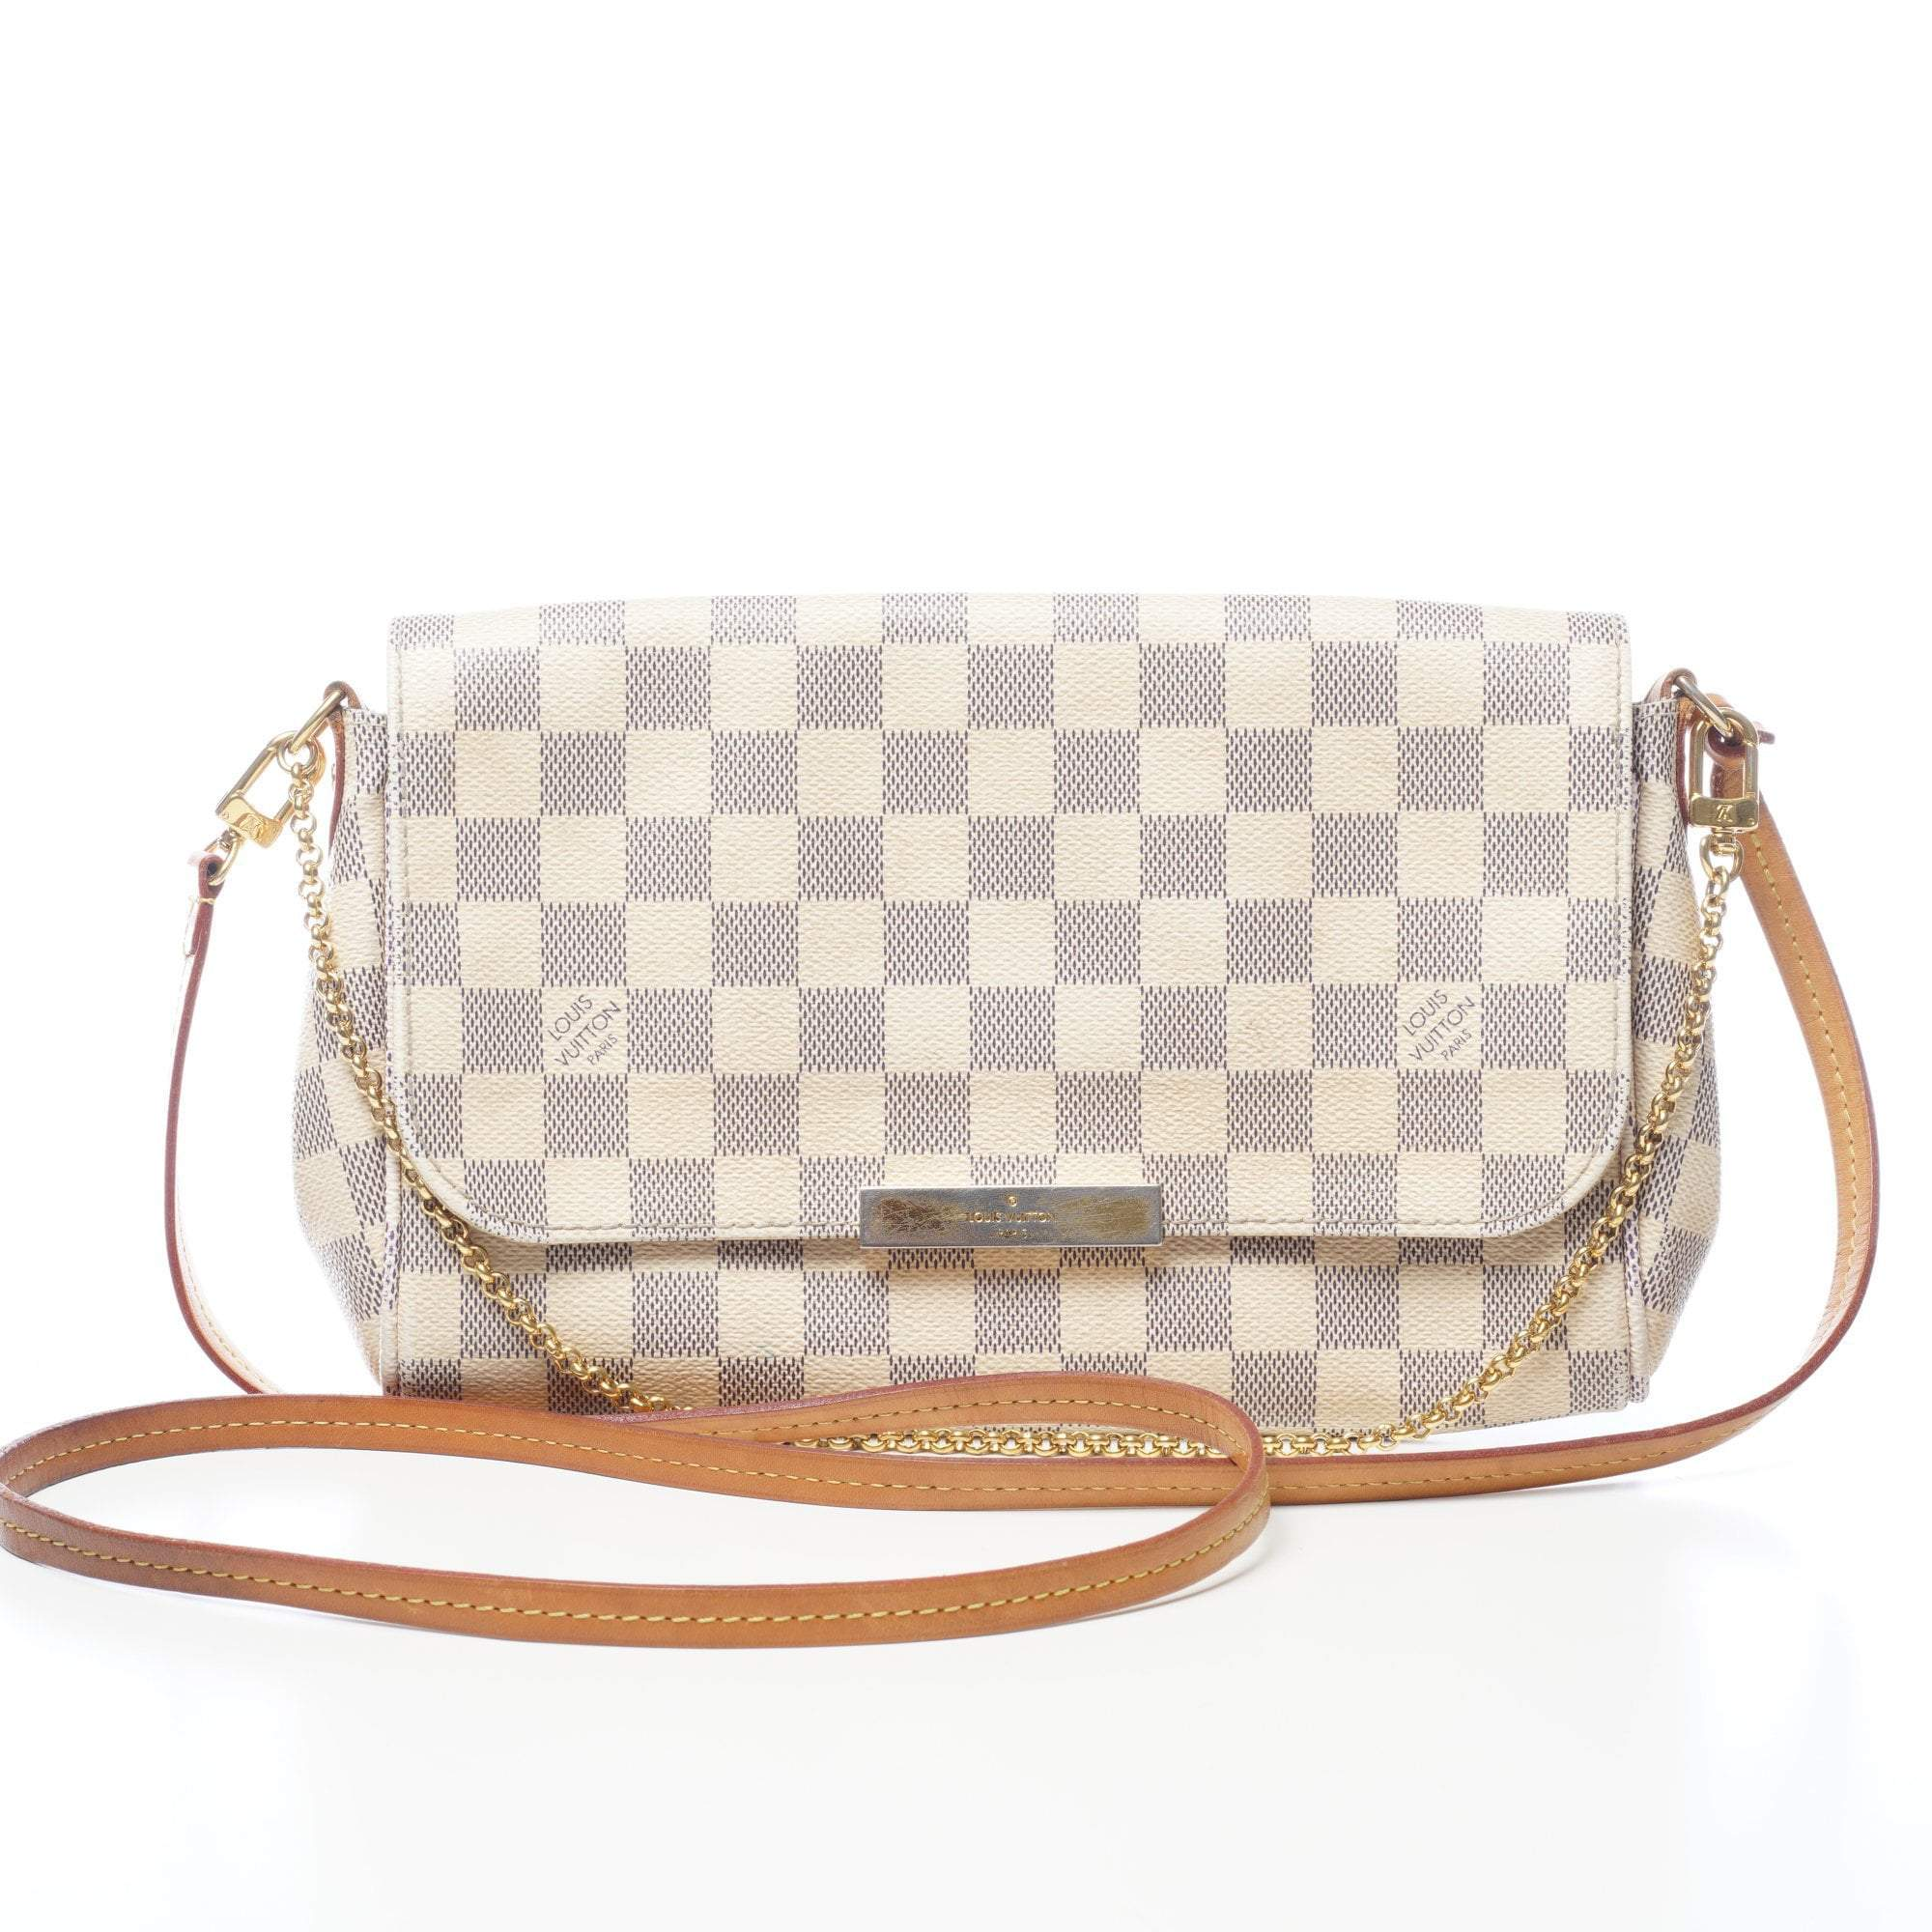 Louis Vuitton Damier Azur Canvas Favorite PM Handbag